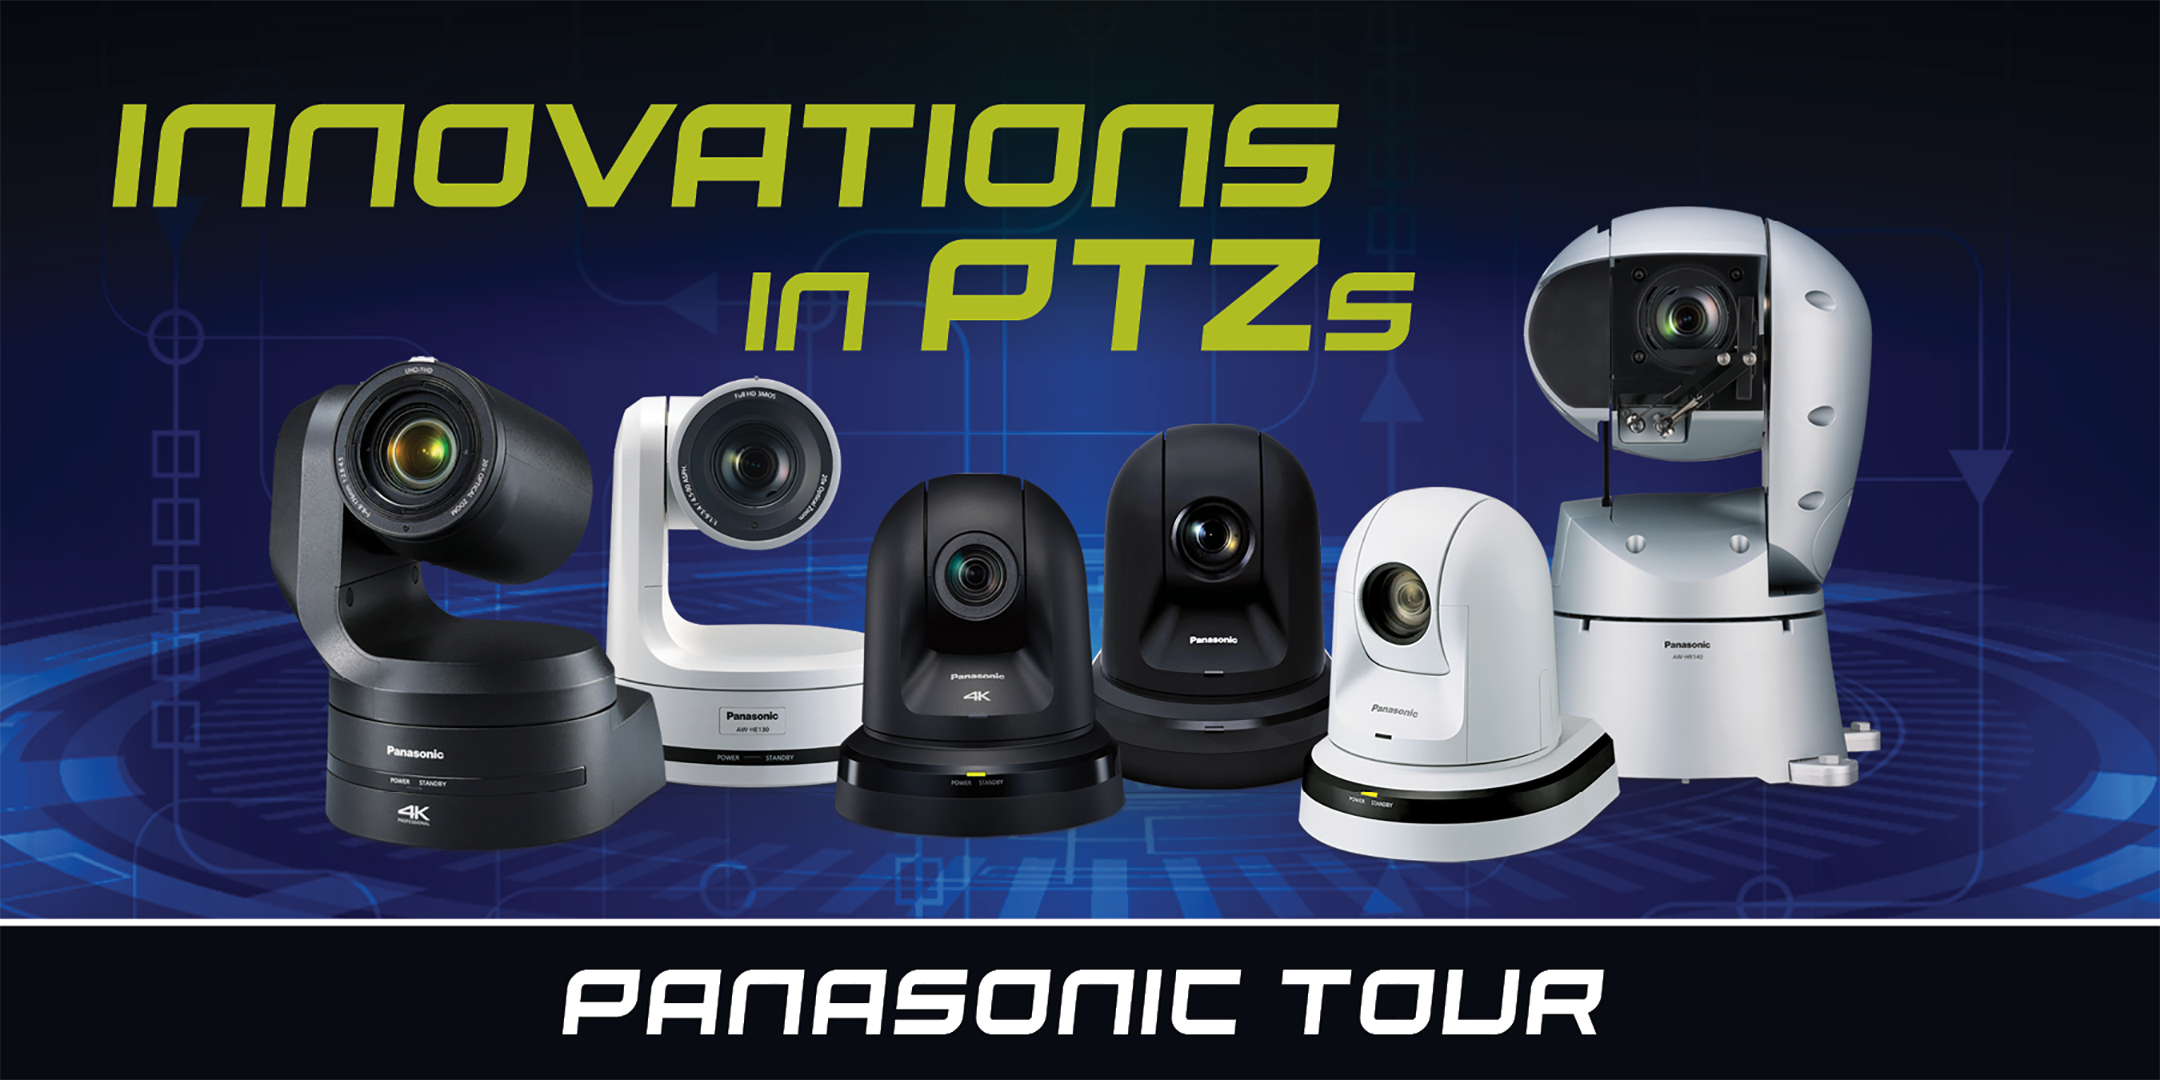 panasonic professional ptz pro ptz remote camera roadshow workshops tour